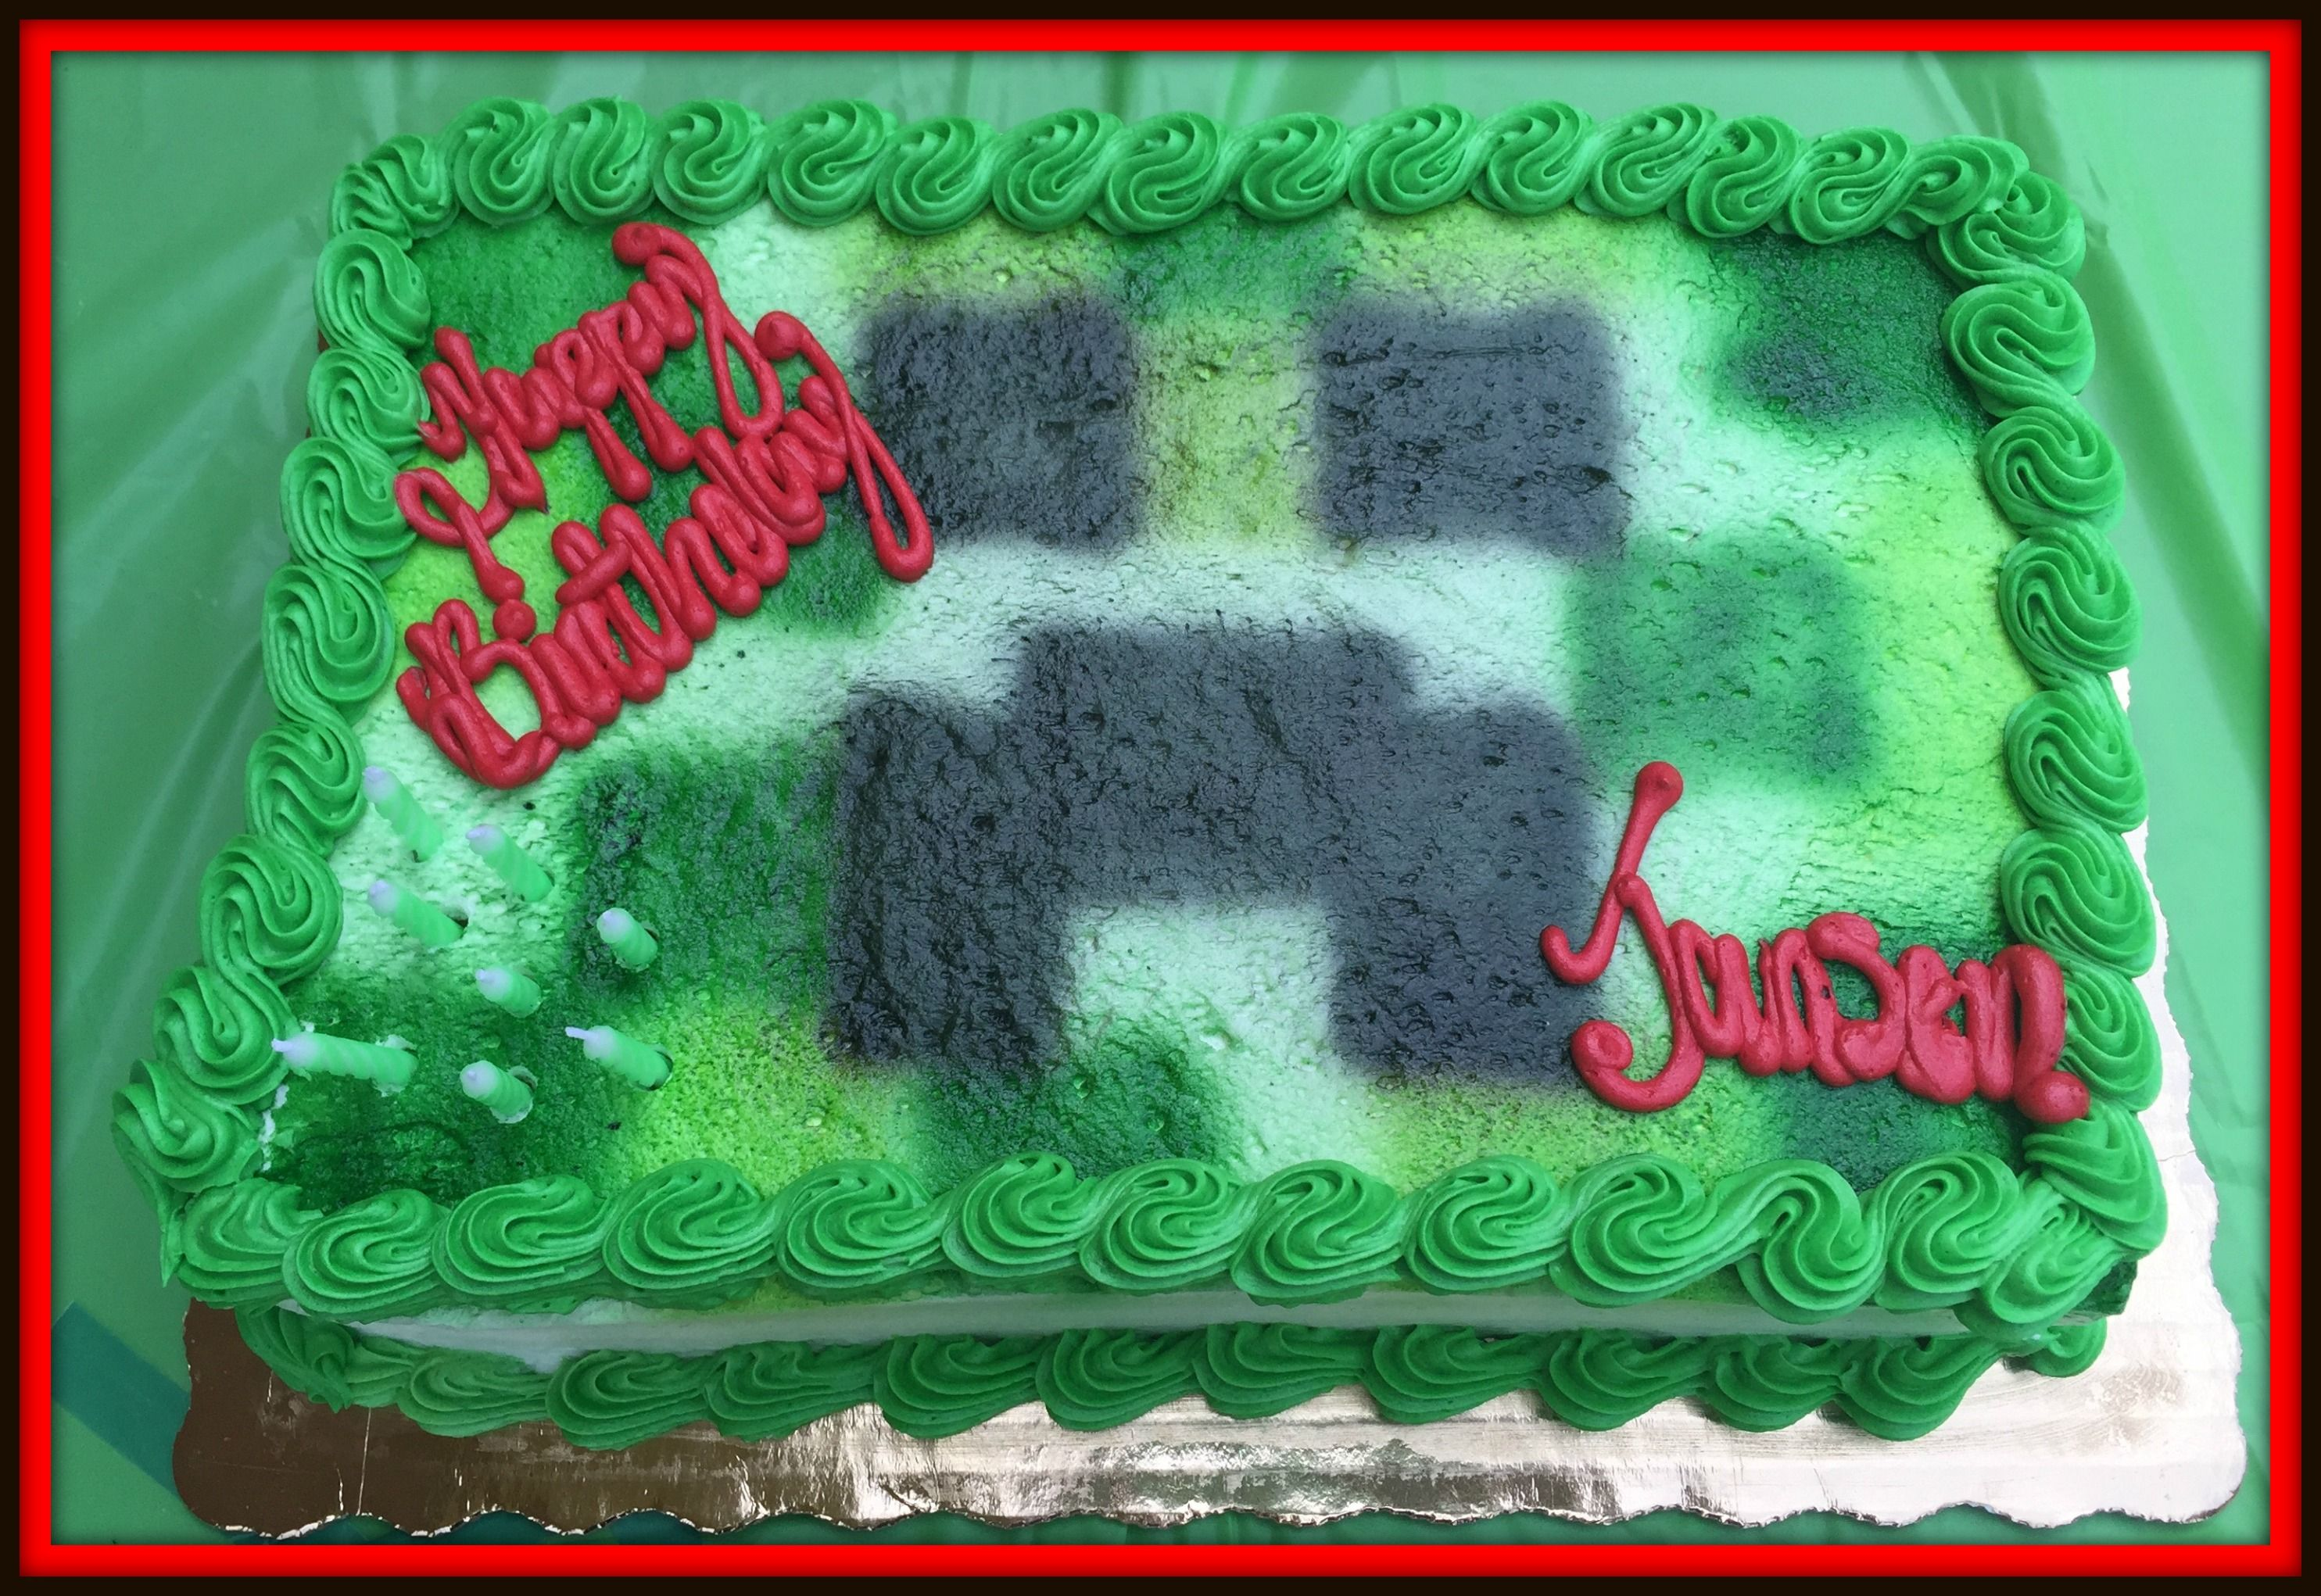 Minecraft Cake From Publix Bakery